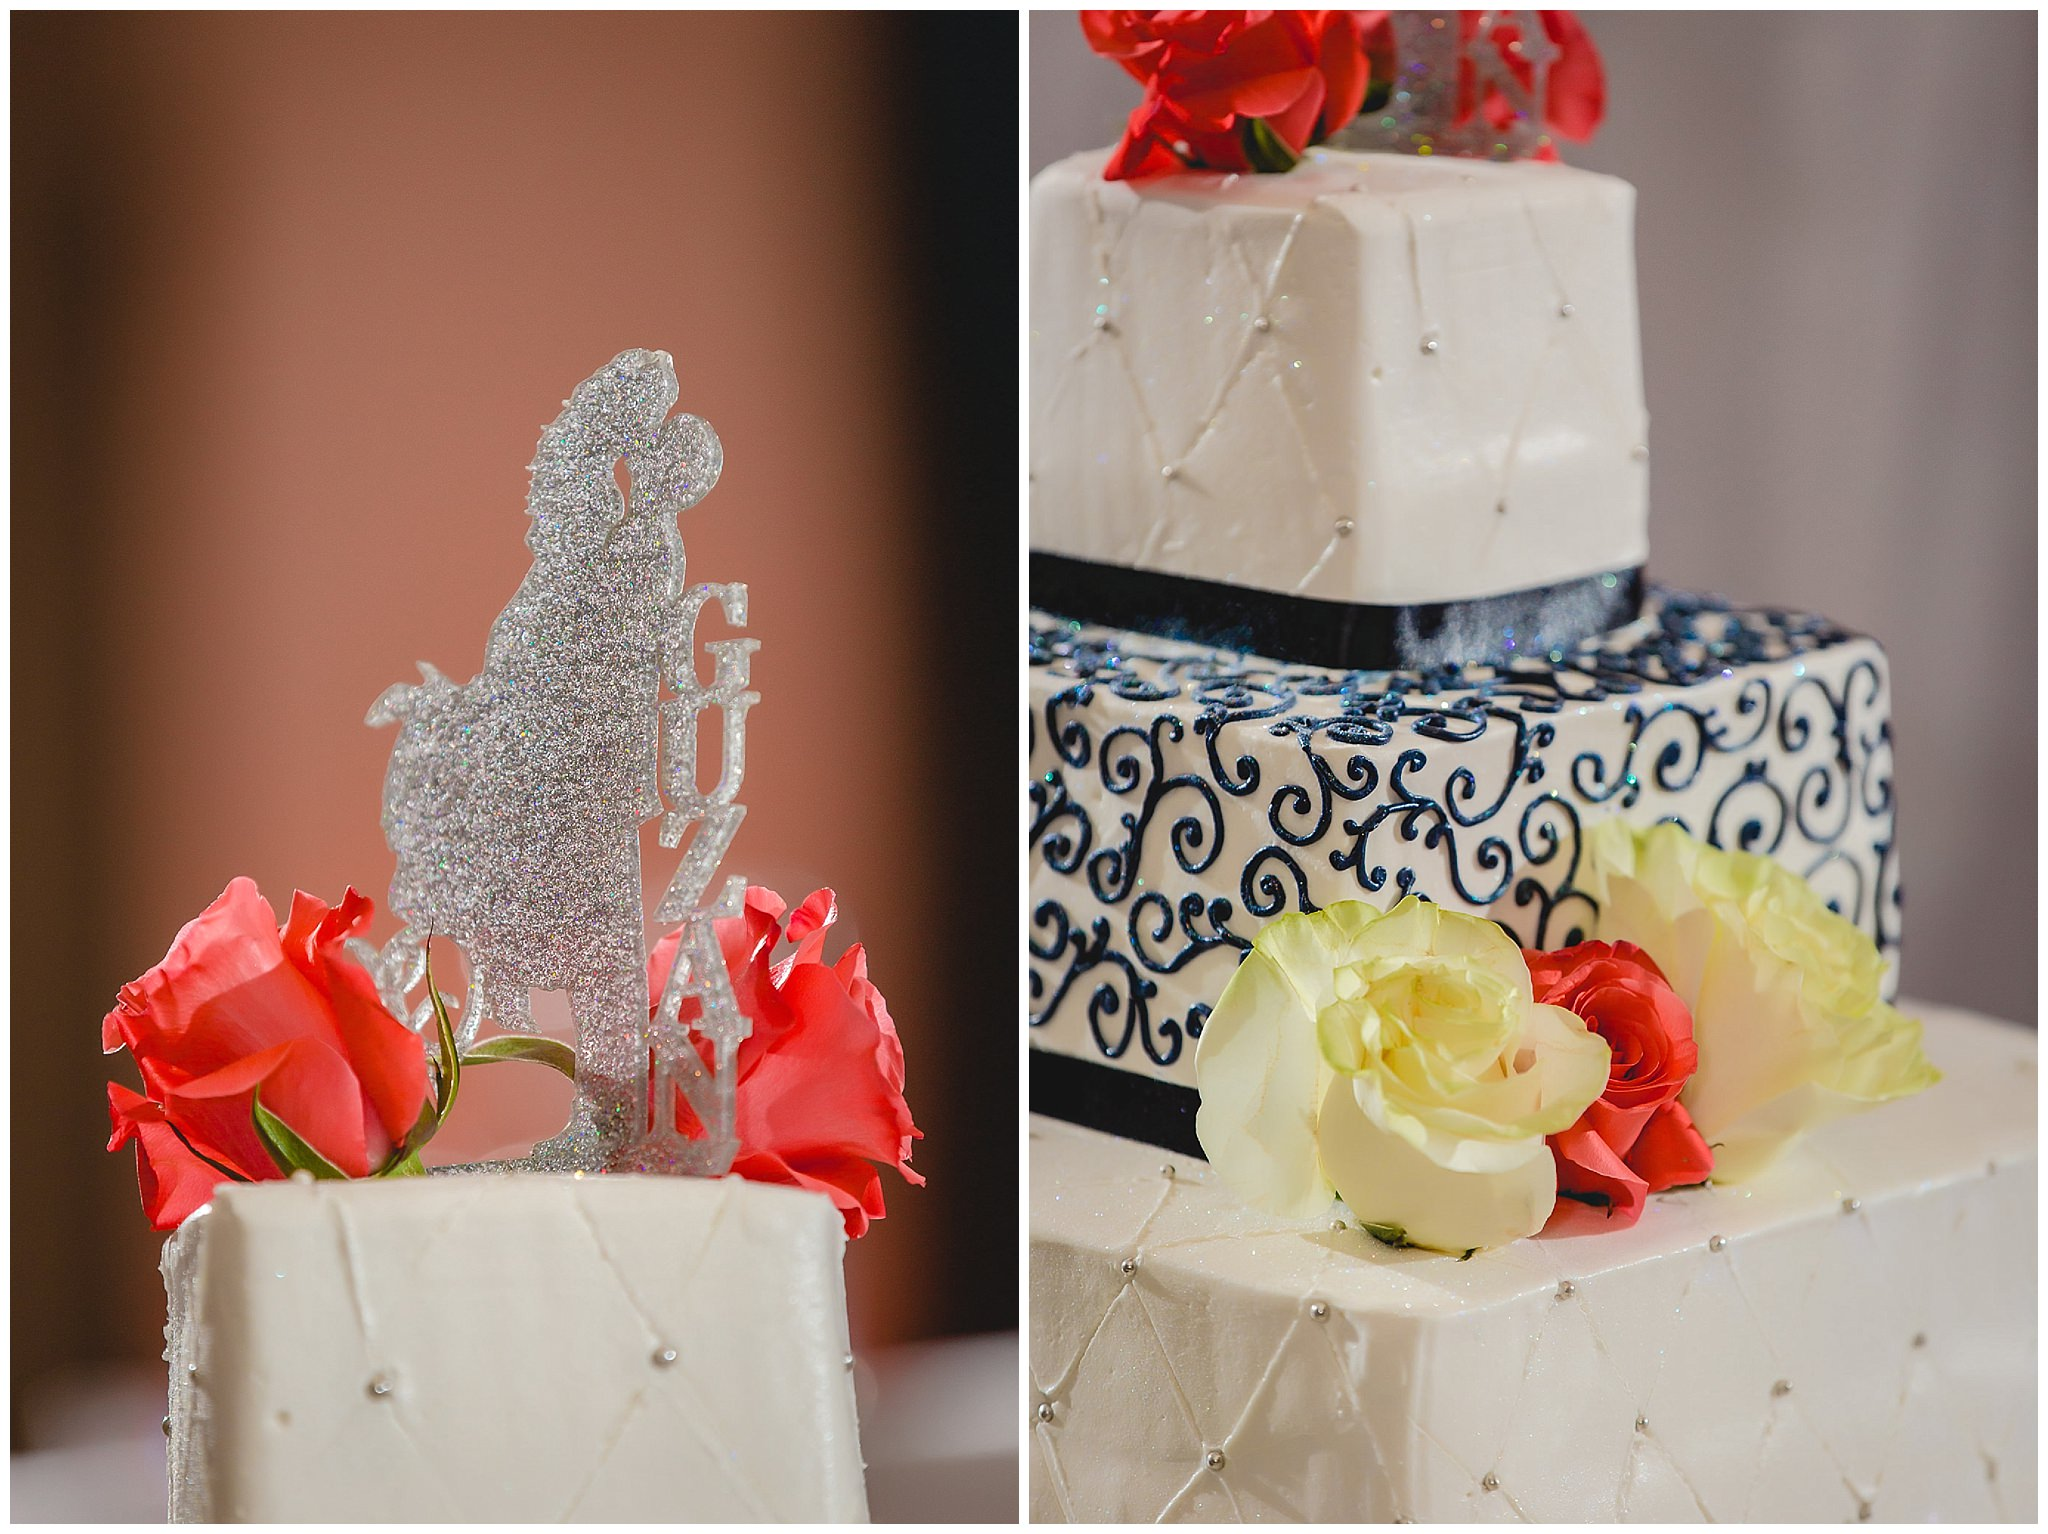 Cake topper and floral details by Carol's Cakes at the Pittsburgh Airport Marriott